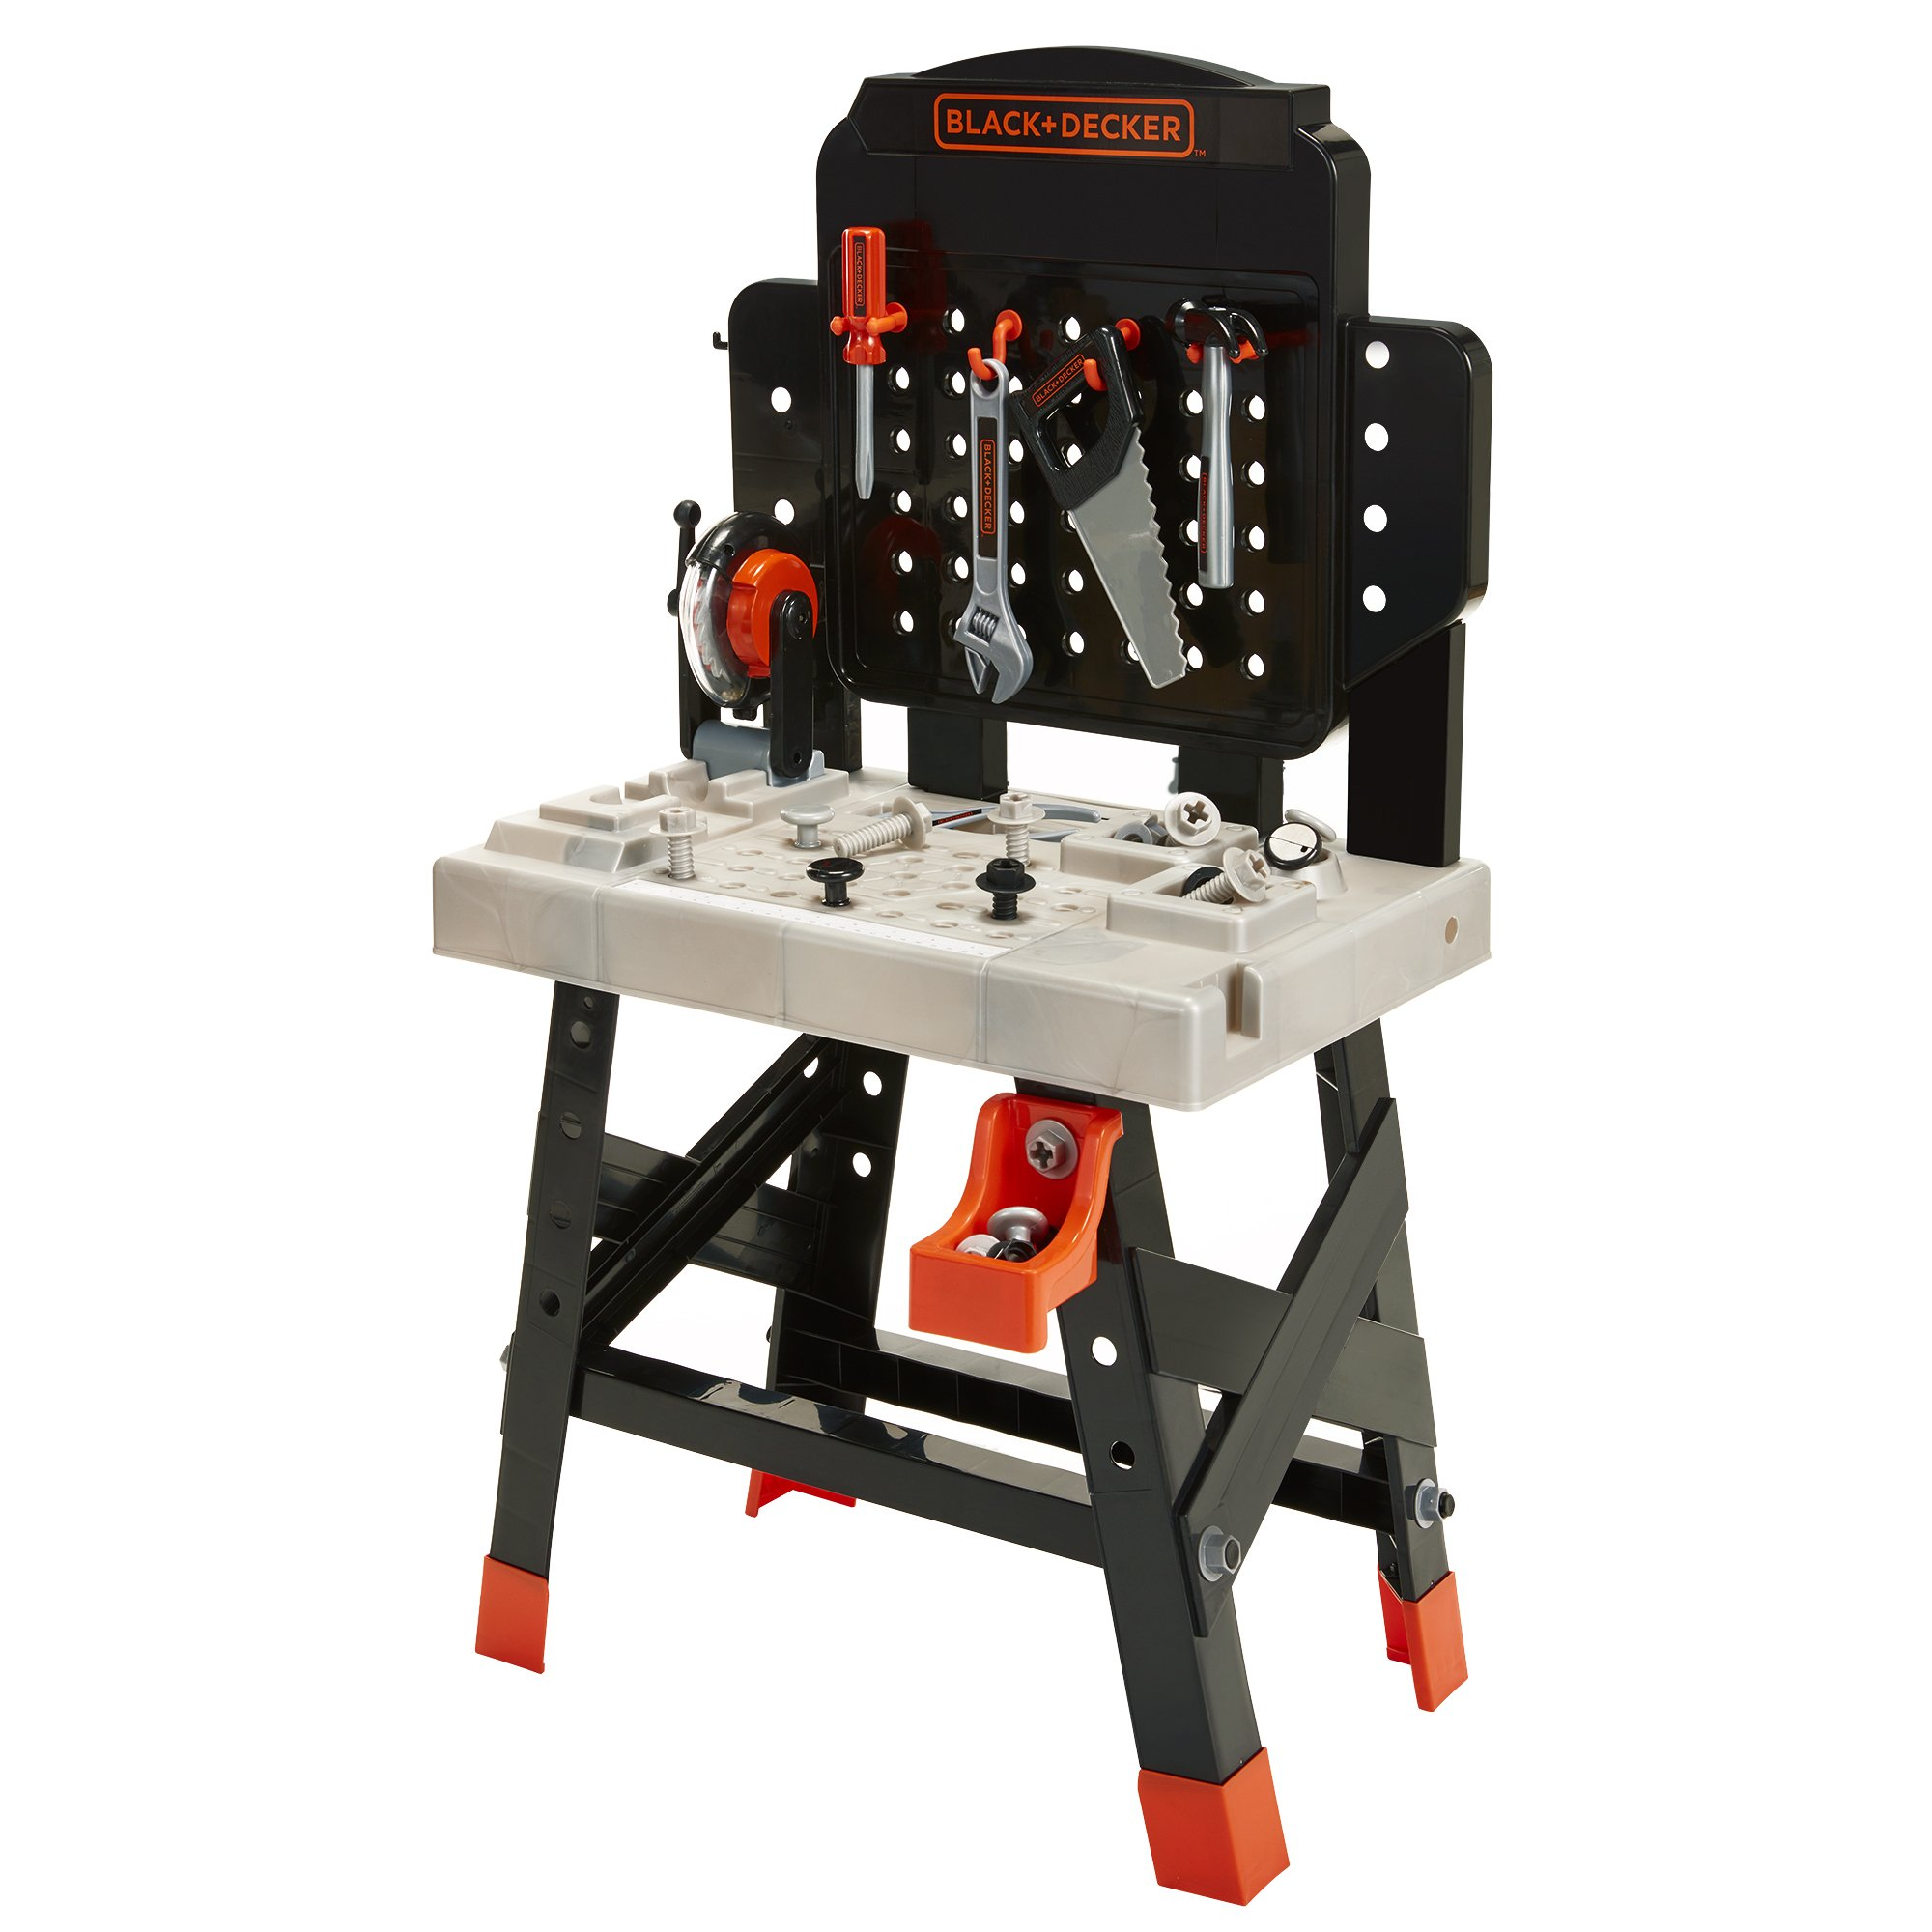 BLACK+DECKER 71382 Jr. Mega Power N' Play Workbench with Realistic Sounds! - 52 Tools & Accessories by BLACK+DECKER (Image #5)